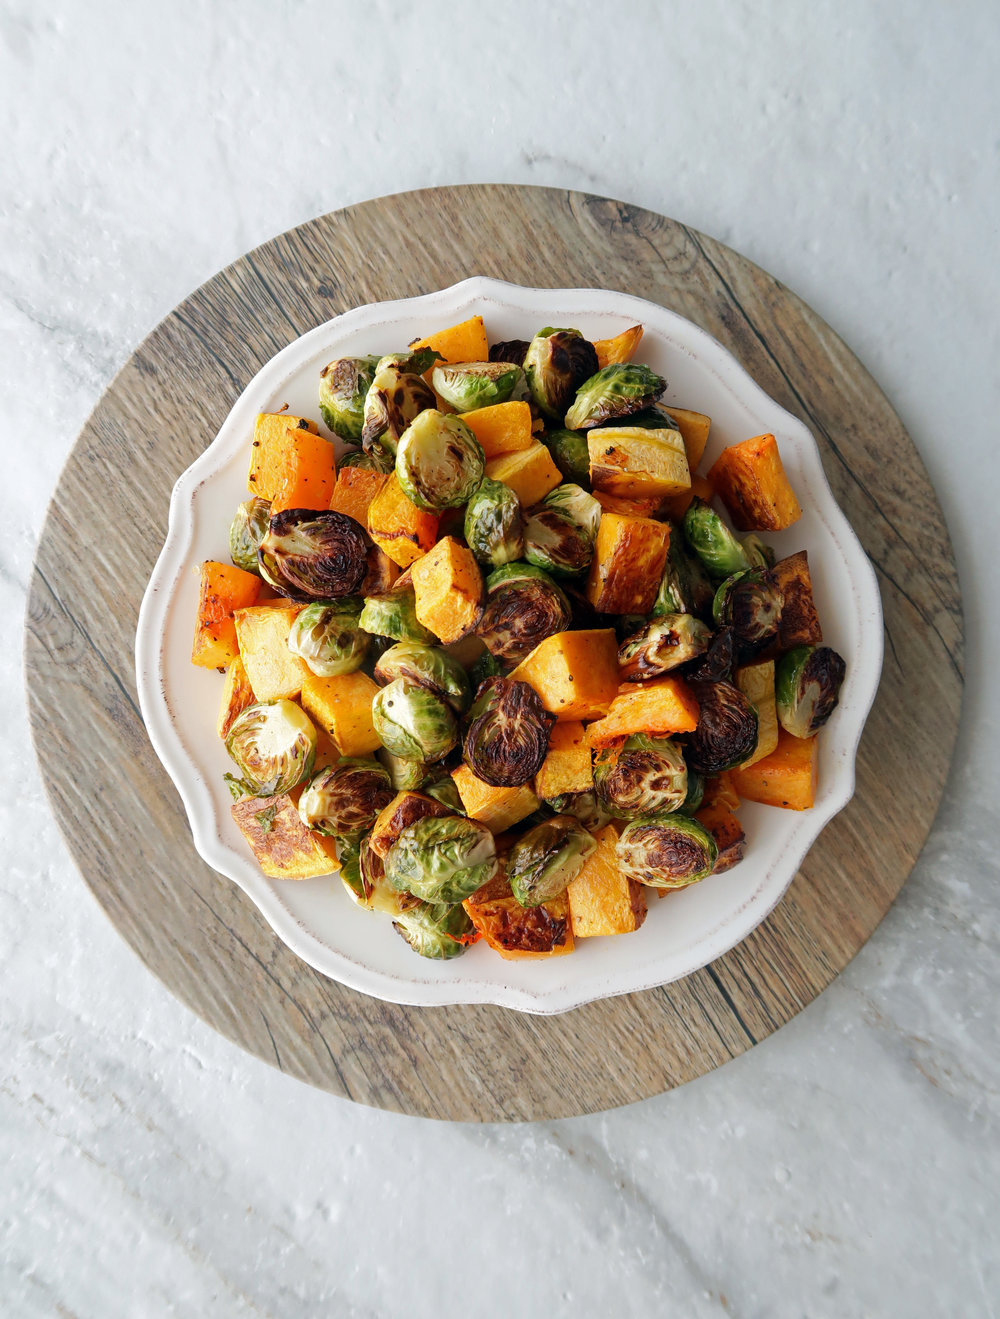 Roasted butternut squash and Brussels sprouts on a white plate.